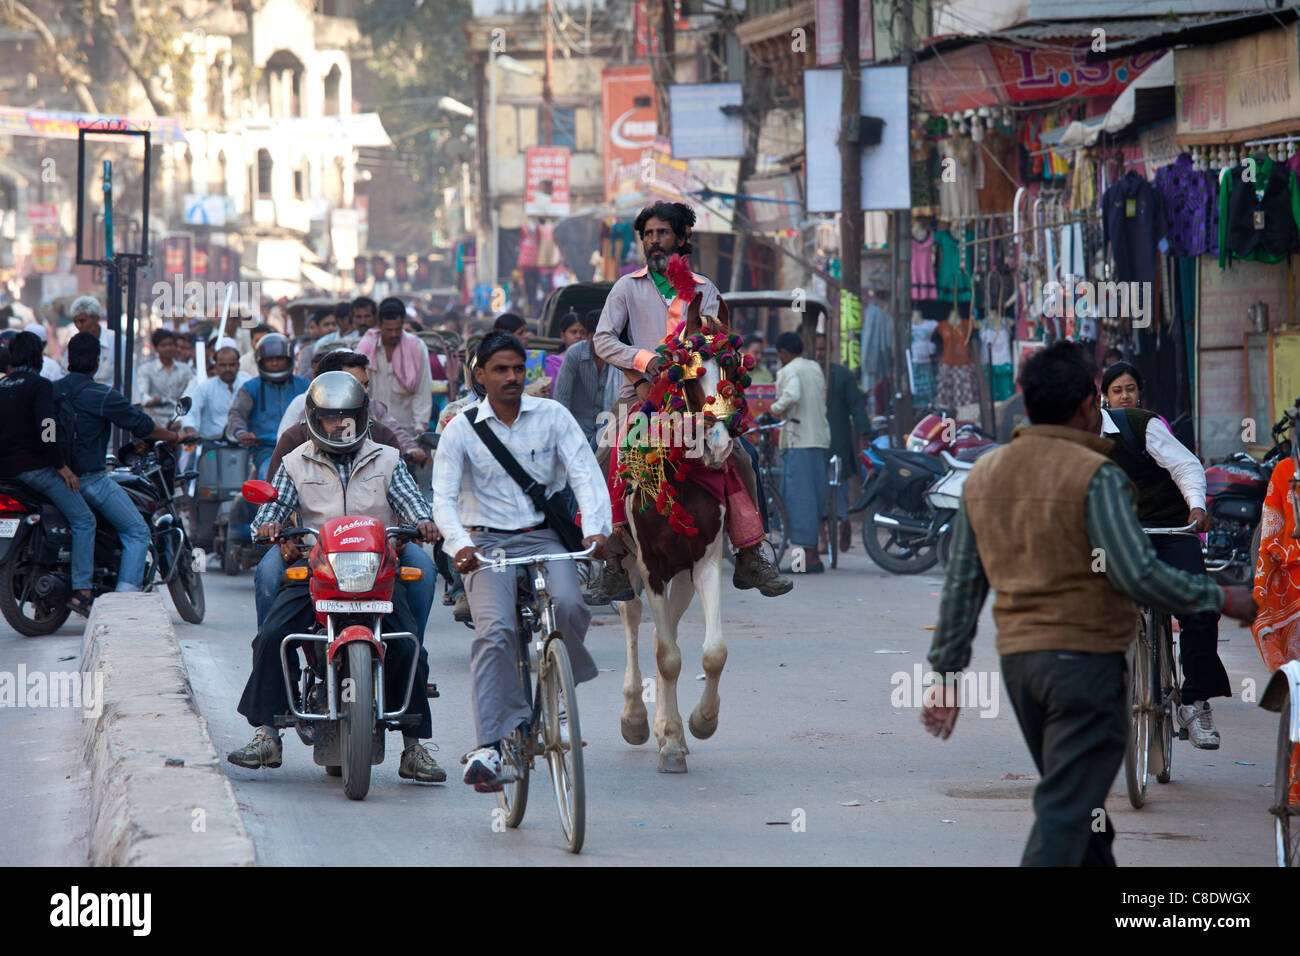 Busy street scene in holy city of Varanasi, Benares, Northern India - Stock Image